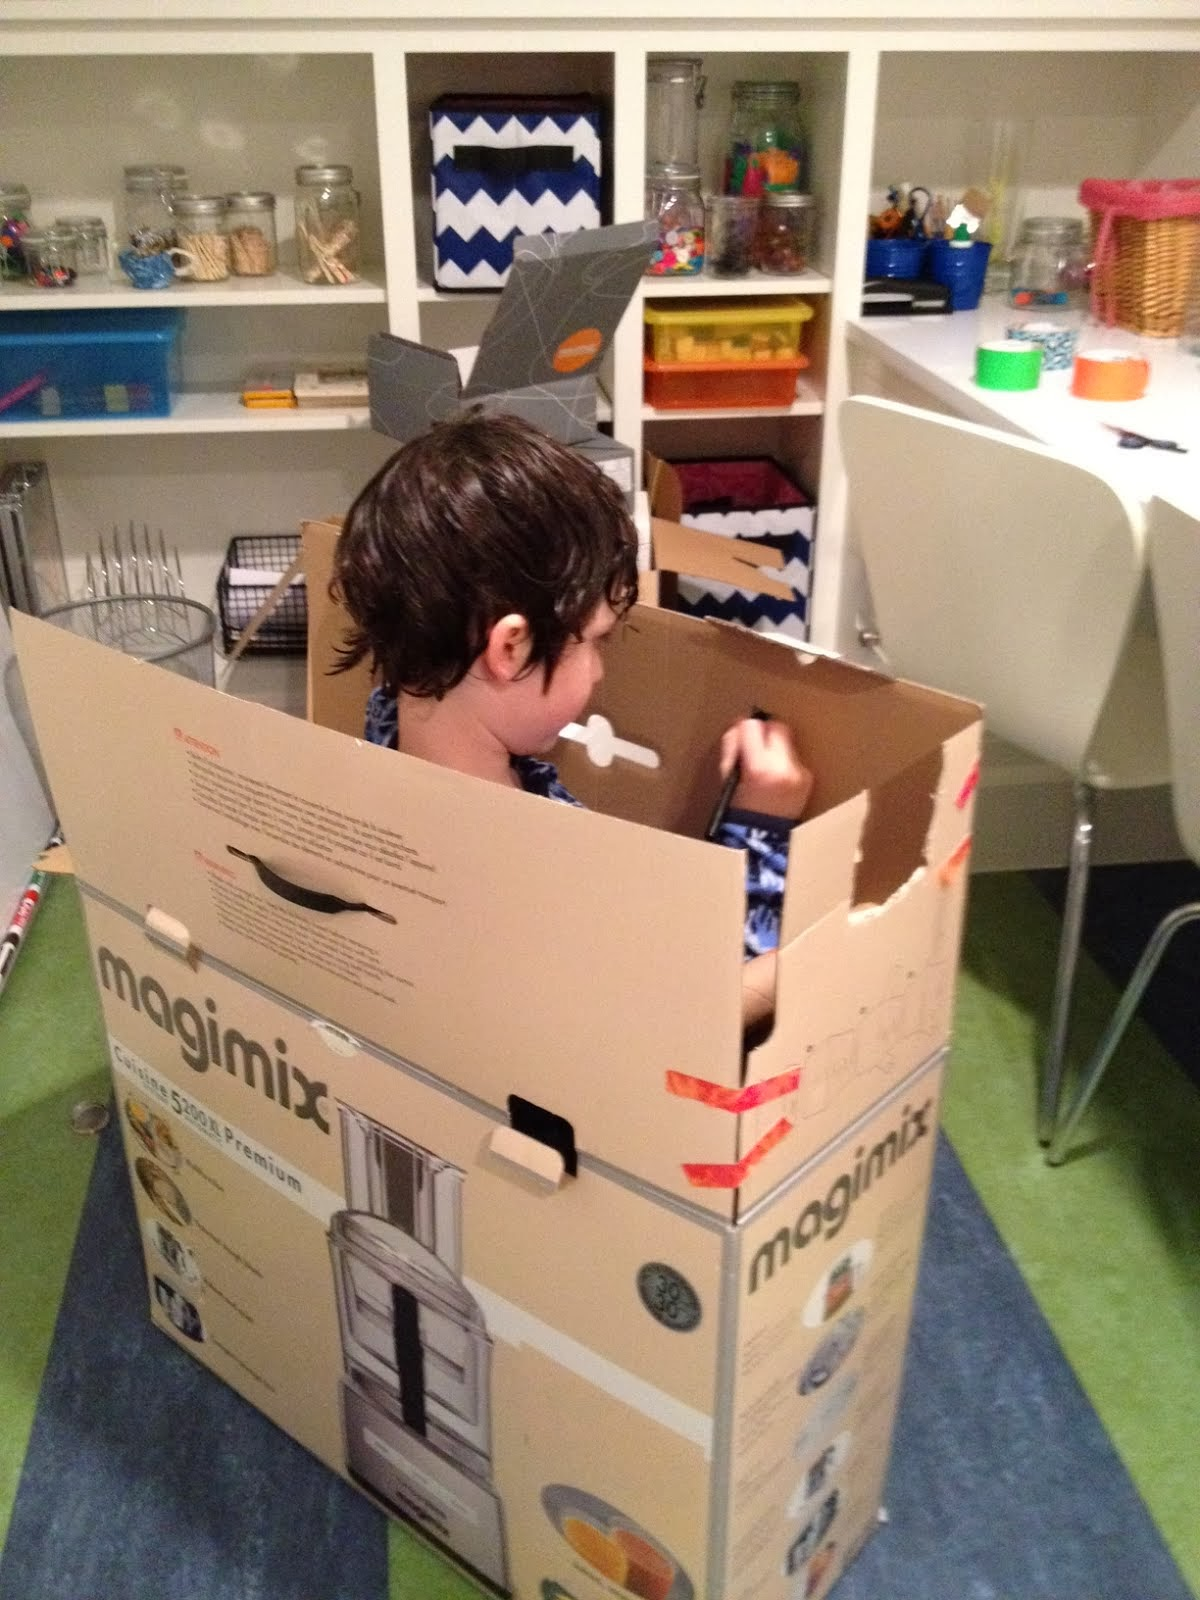 a box is fun... but are you looking for other children's gift ideas?